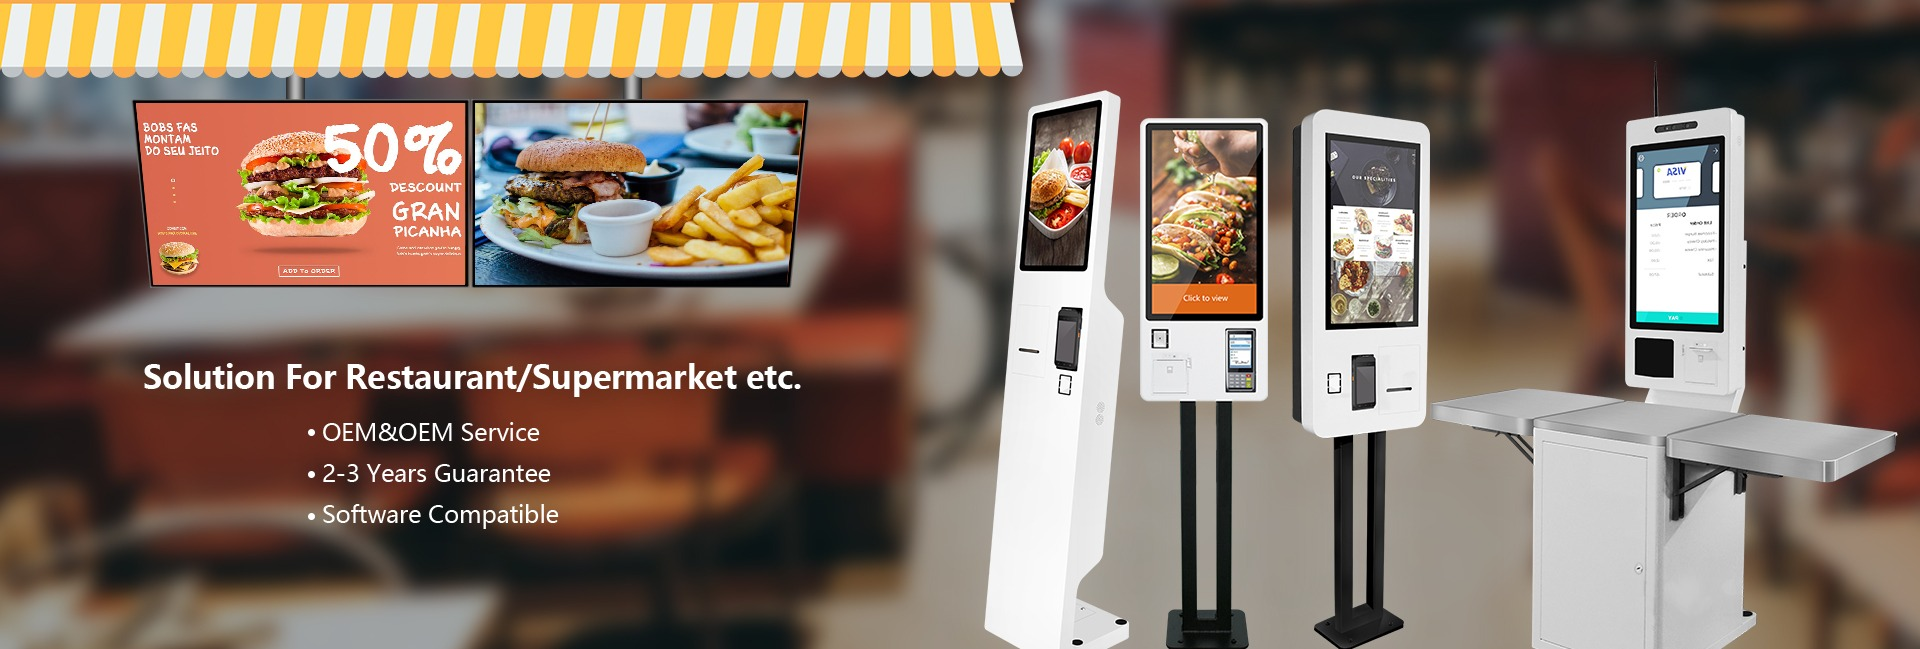 epos hospitality software Digital Screens and self order kiosk